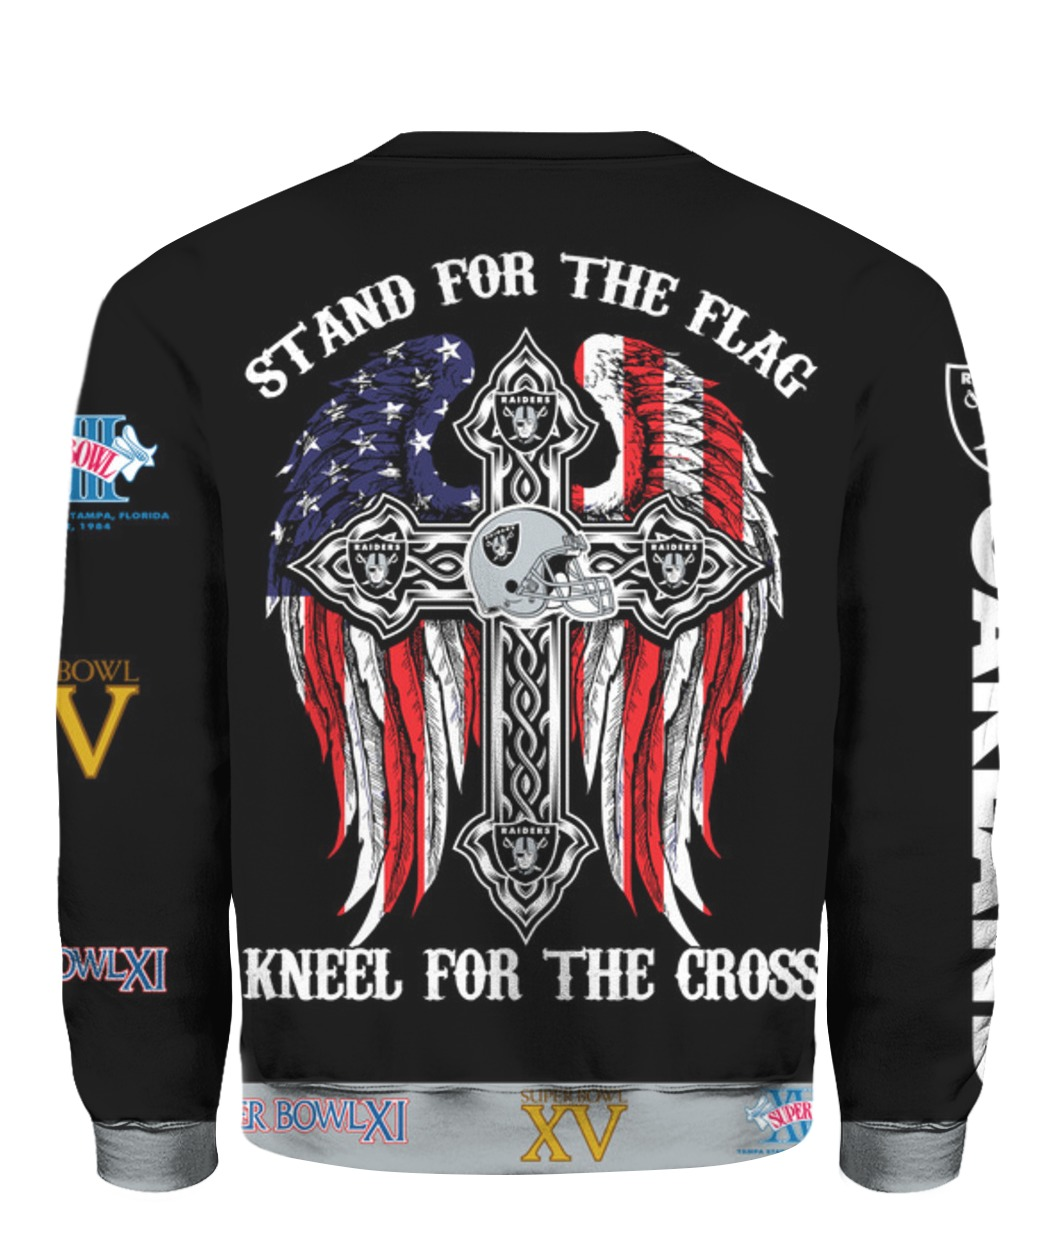 Stand for the flag kneel for the cross oakland raiders all over print sweatshirt - back